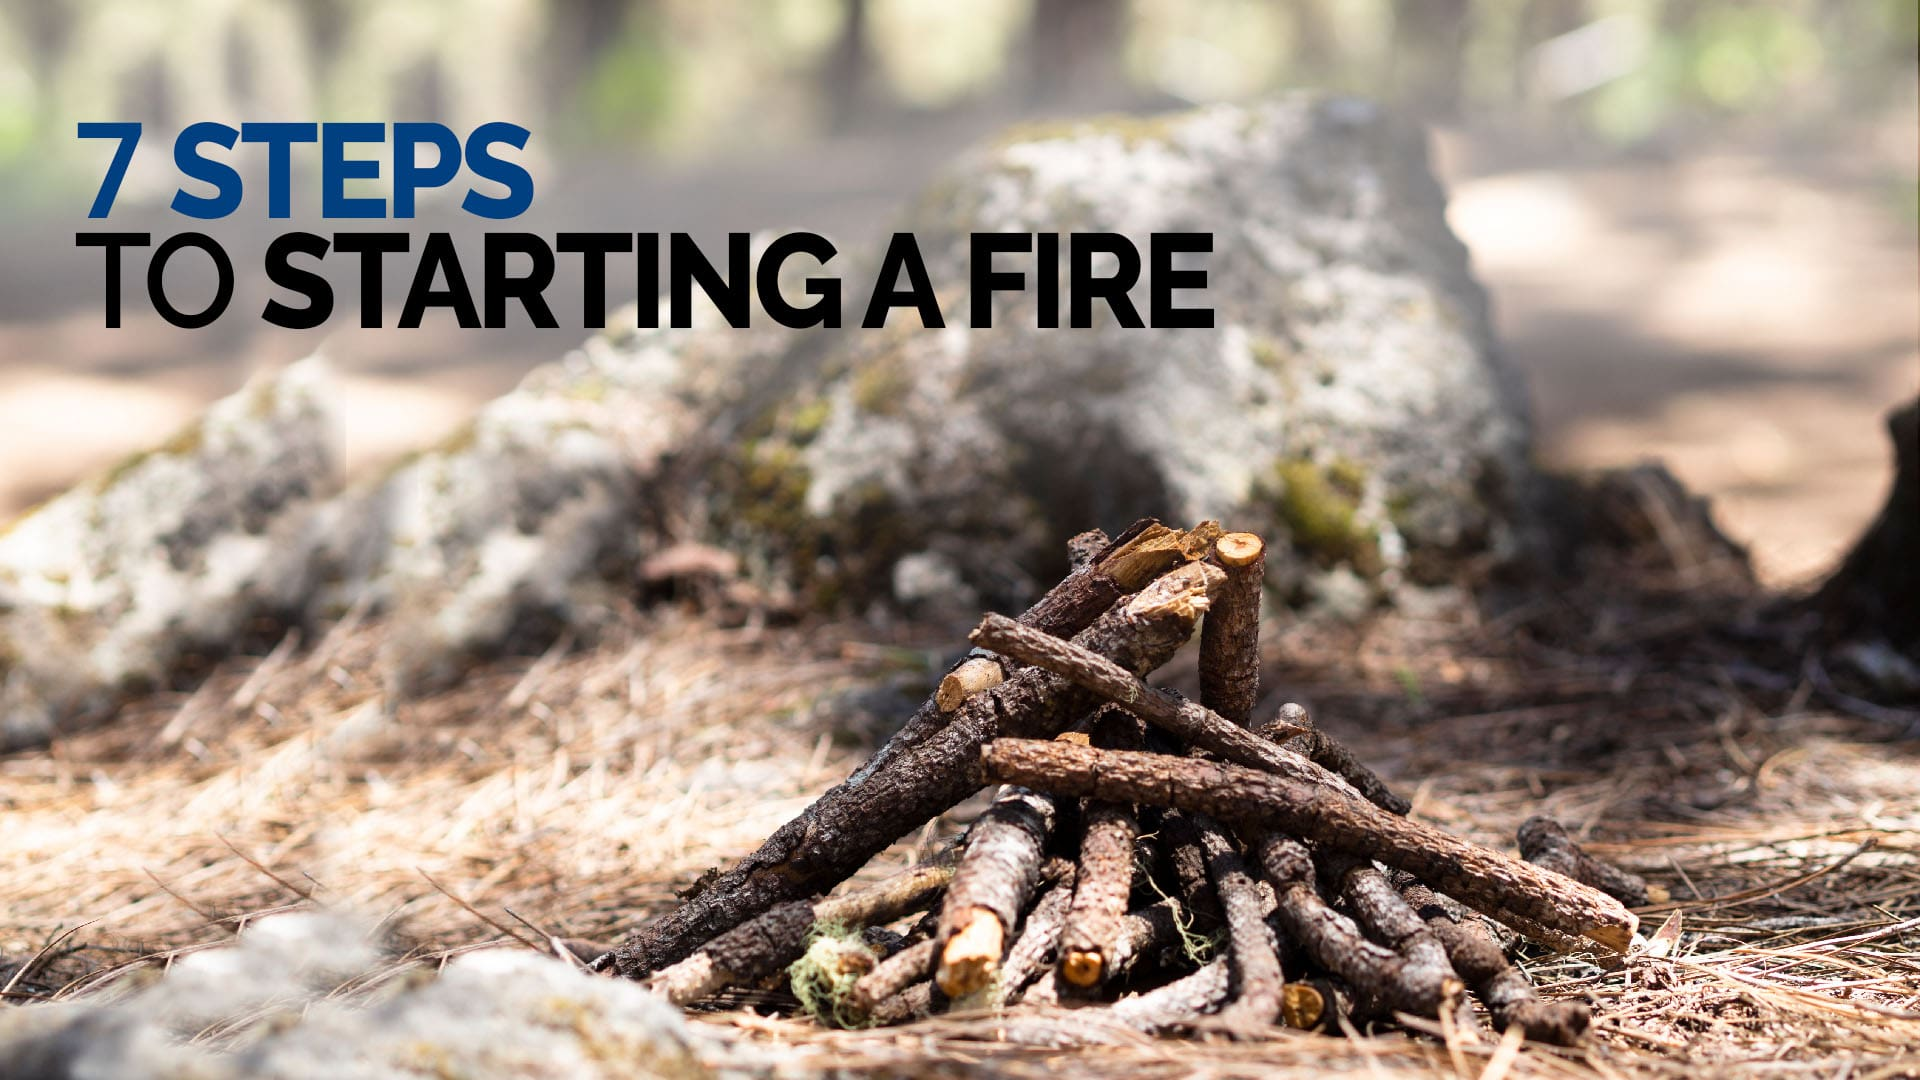 7 Steps to starting a fire